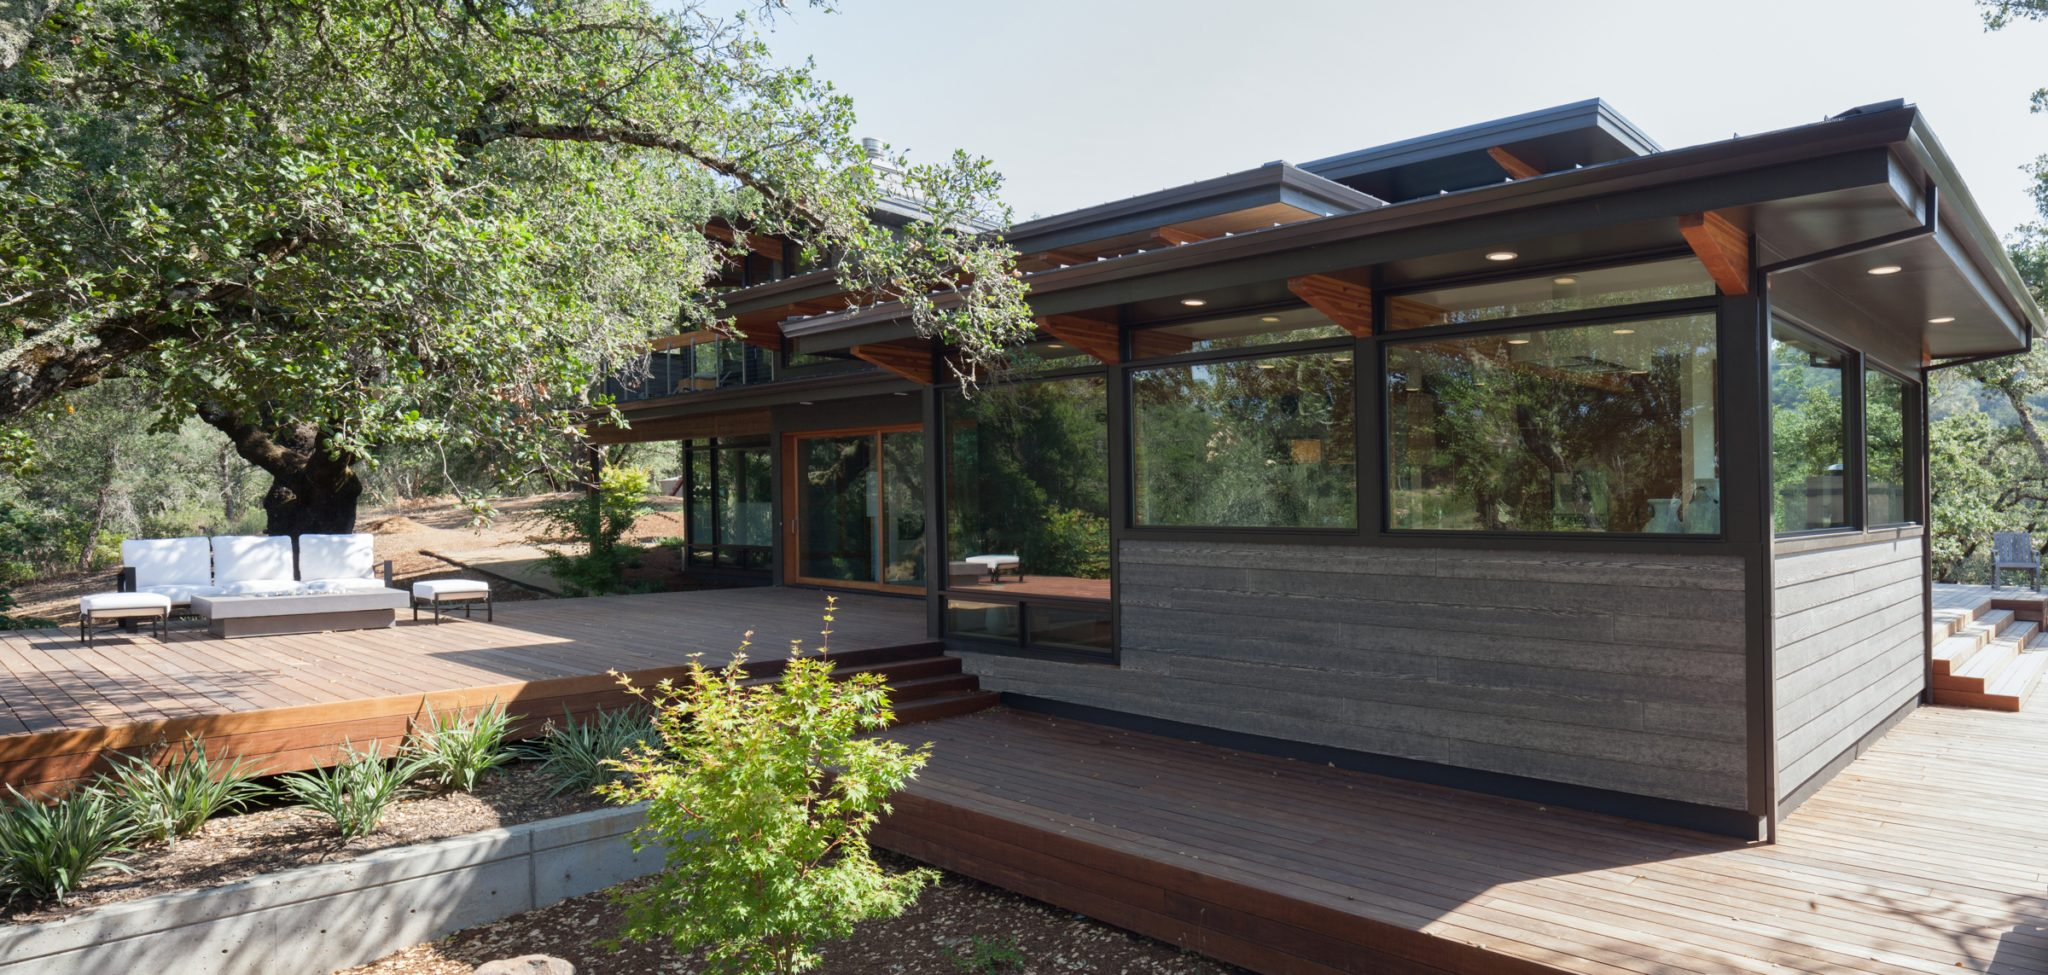 The house features a stunning, contemporary exterior design.